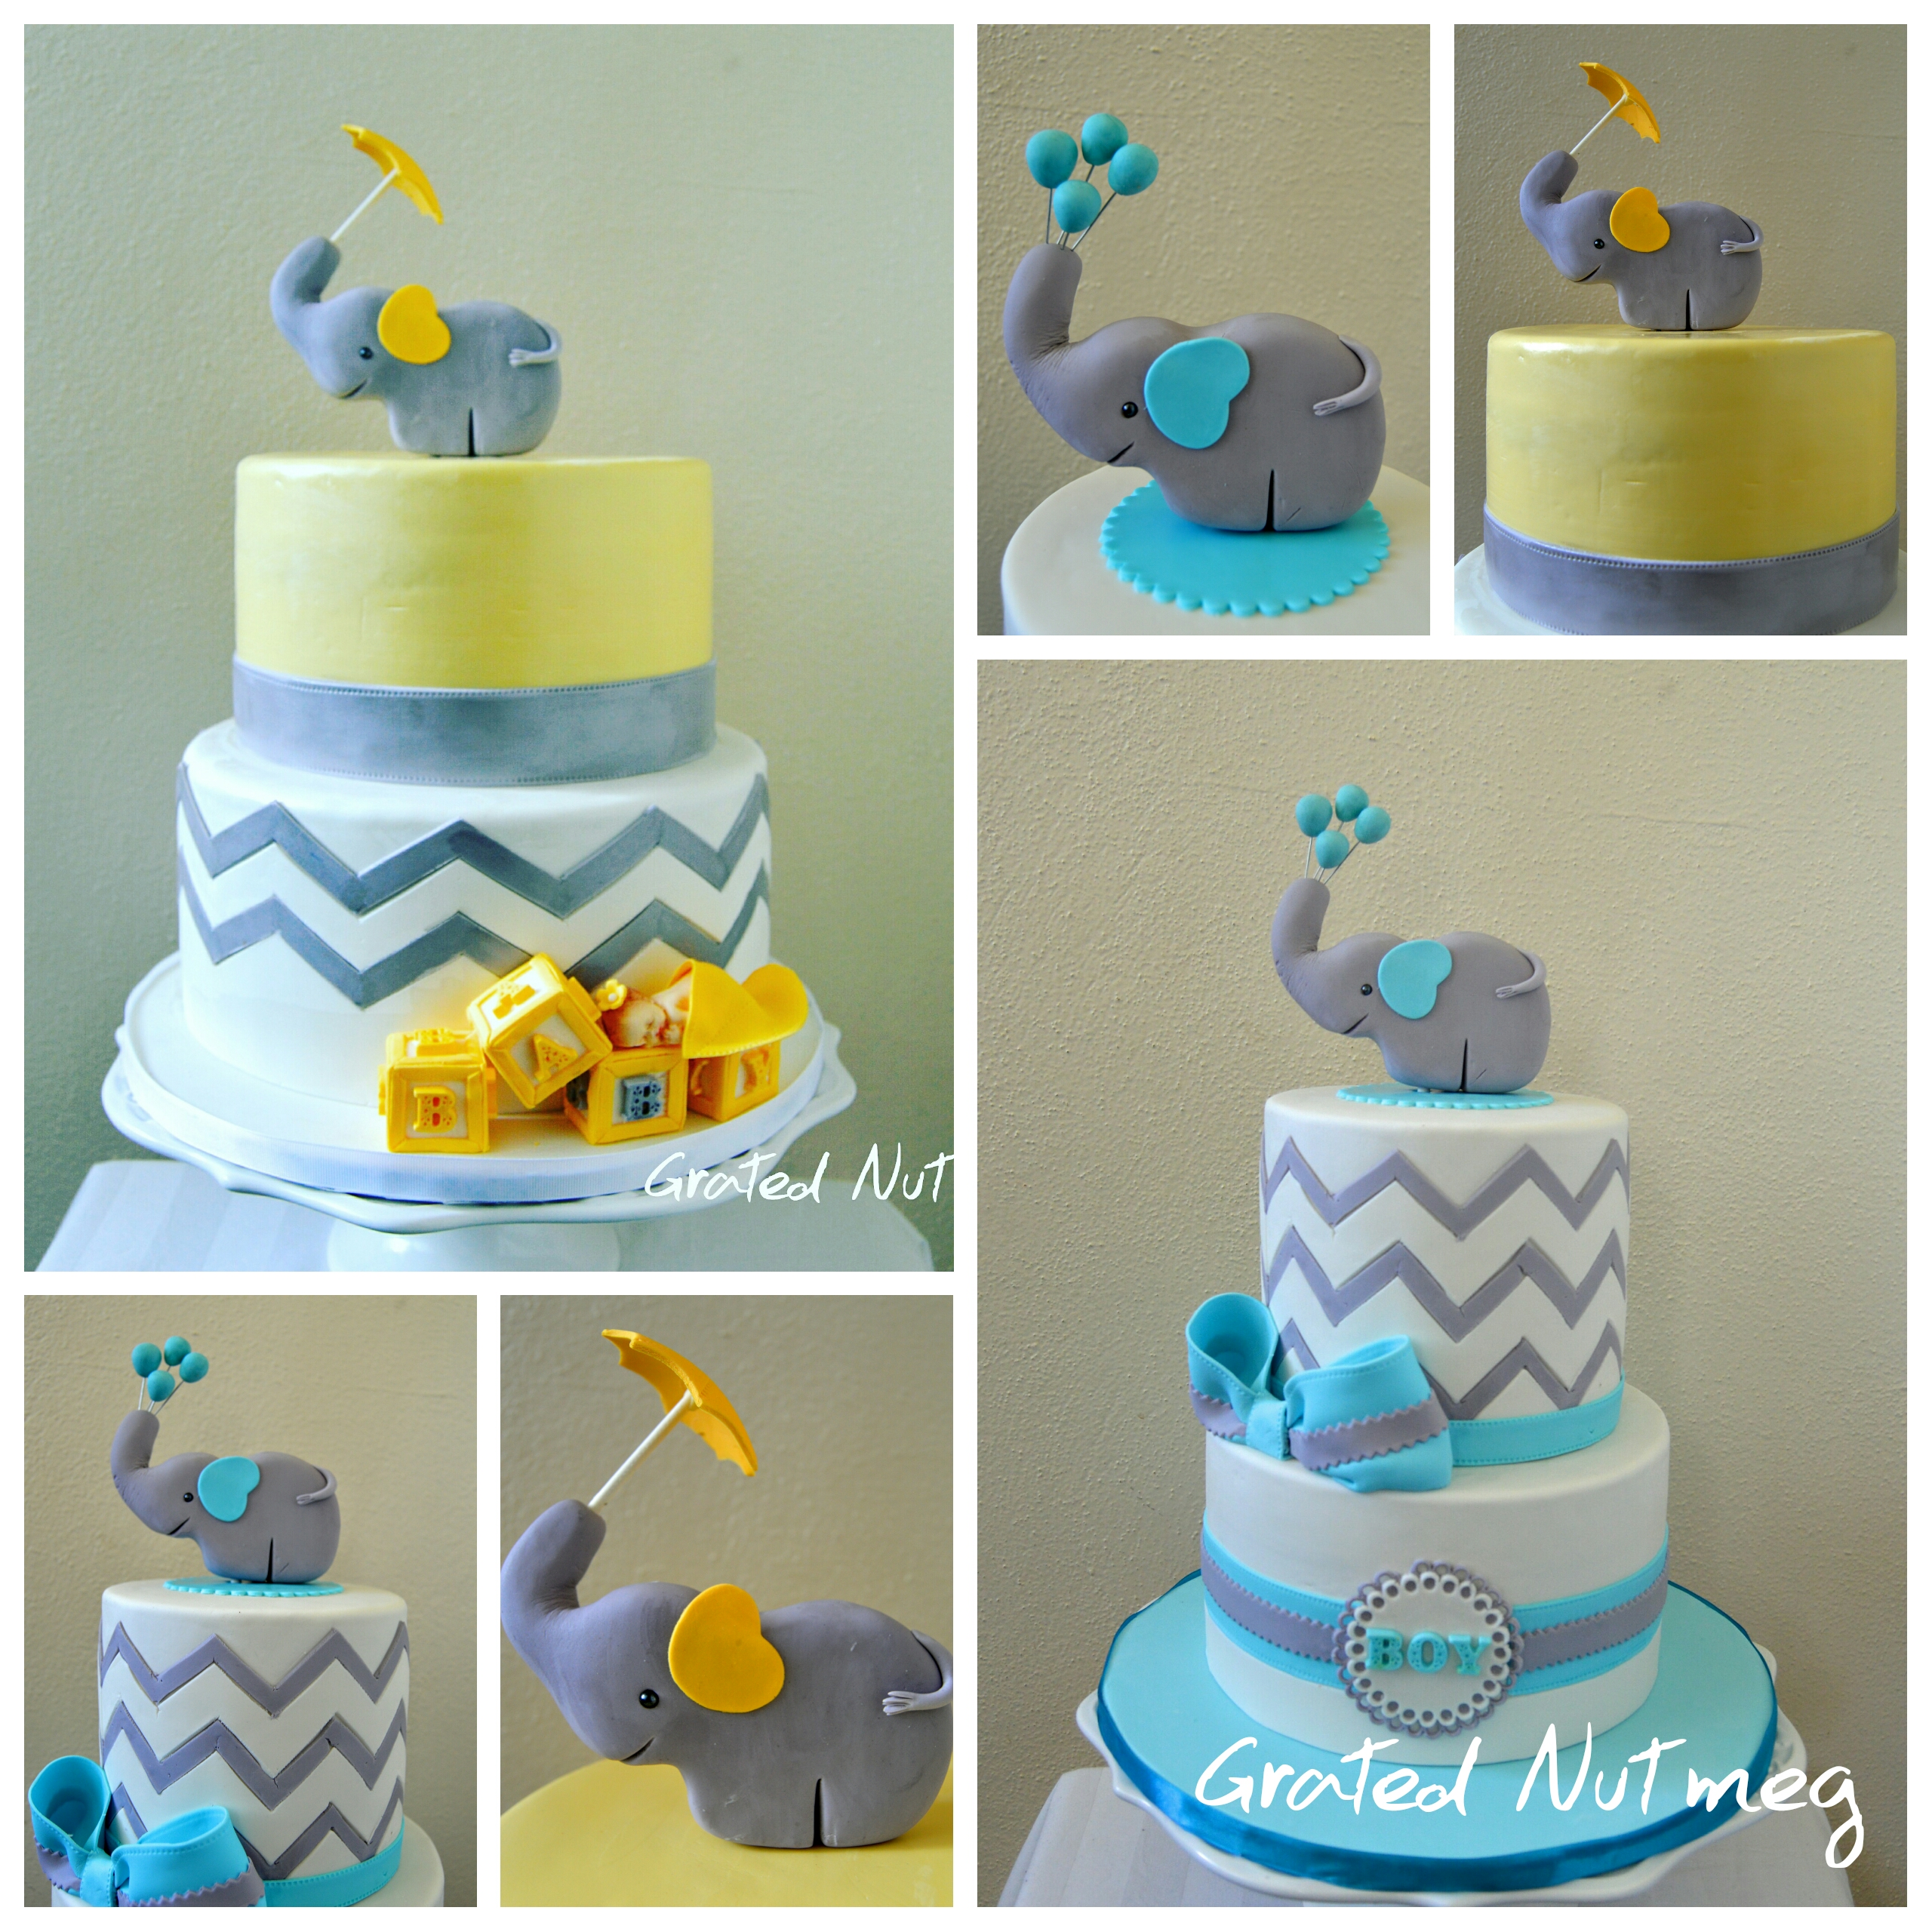 The Making Of Chevron Baby Shower Cakes With Elephant Toppers